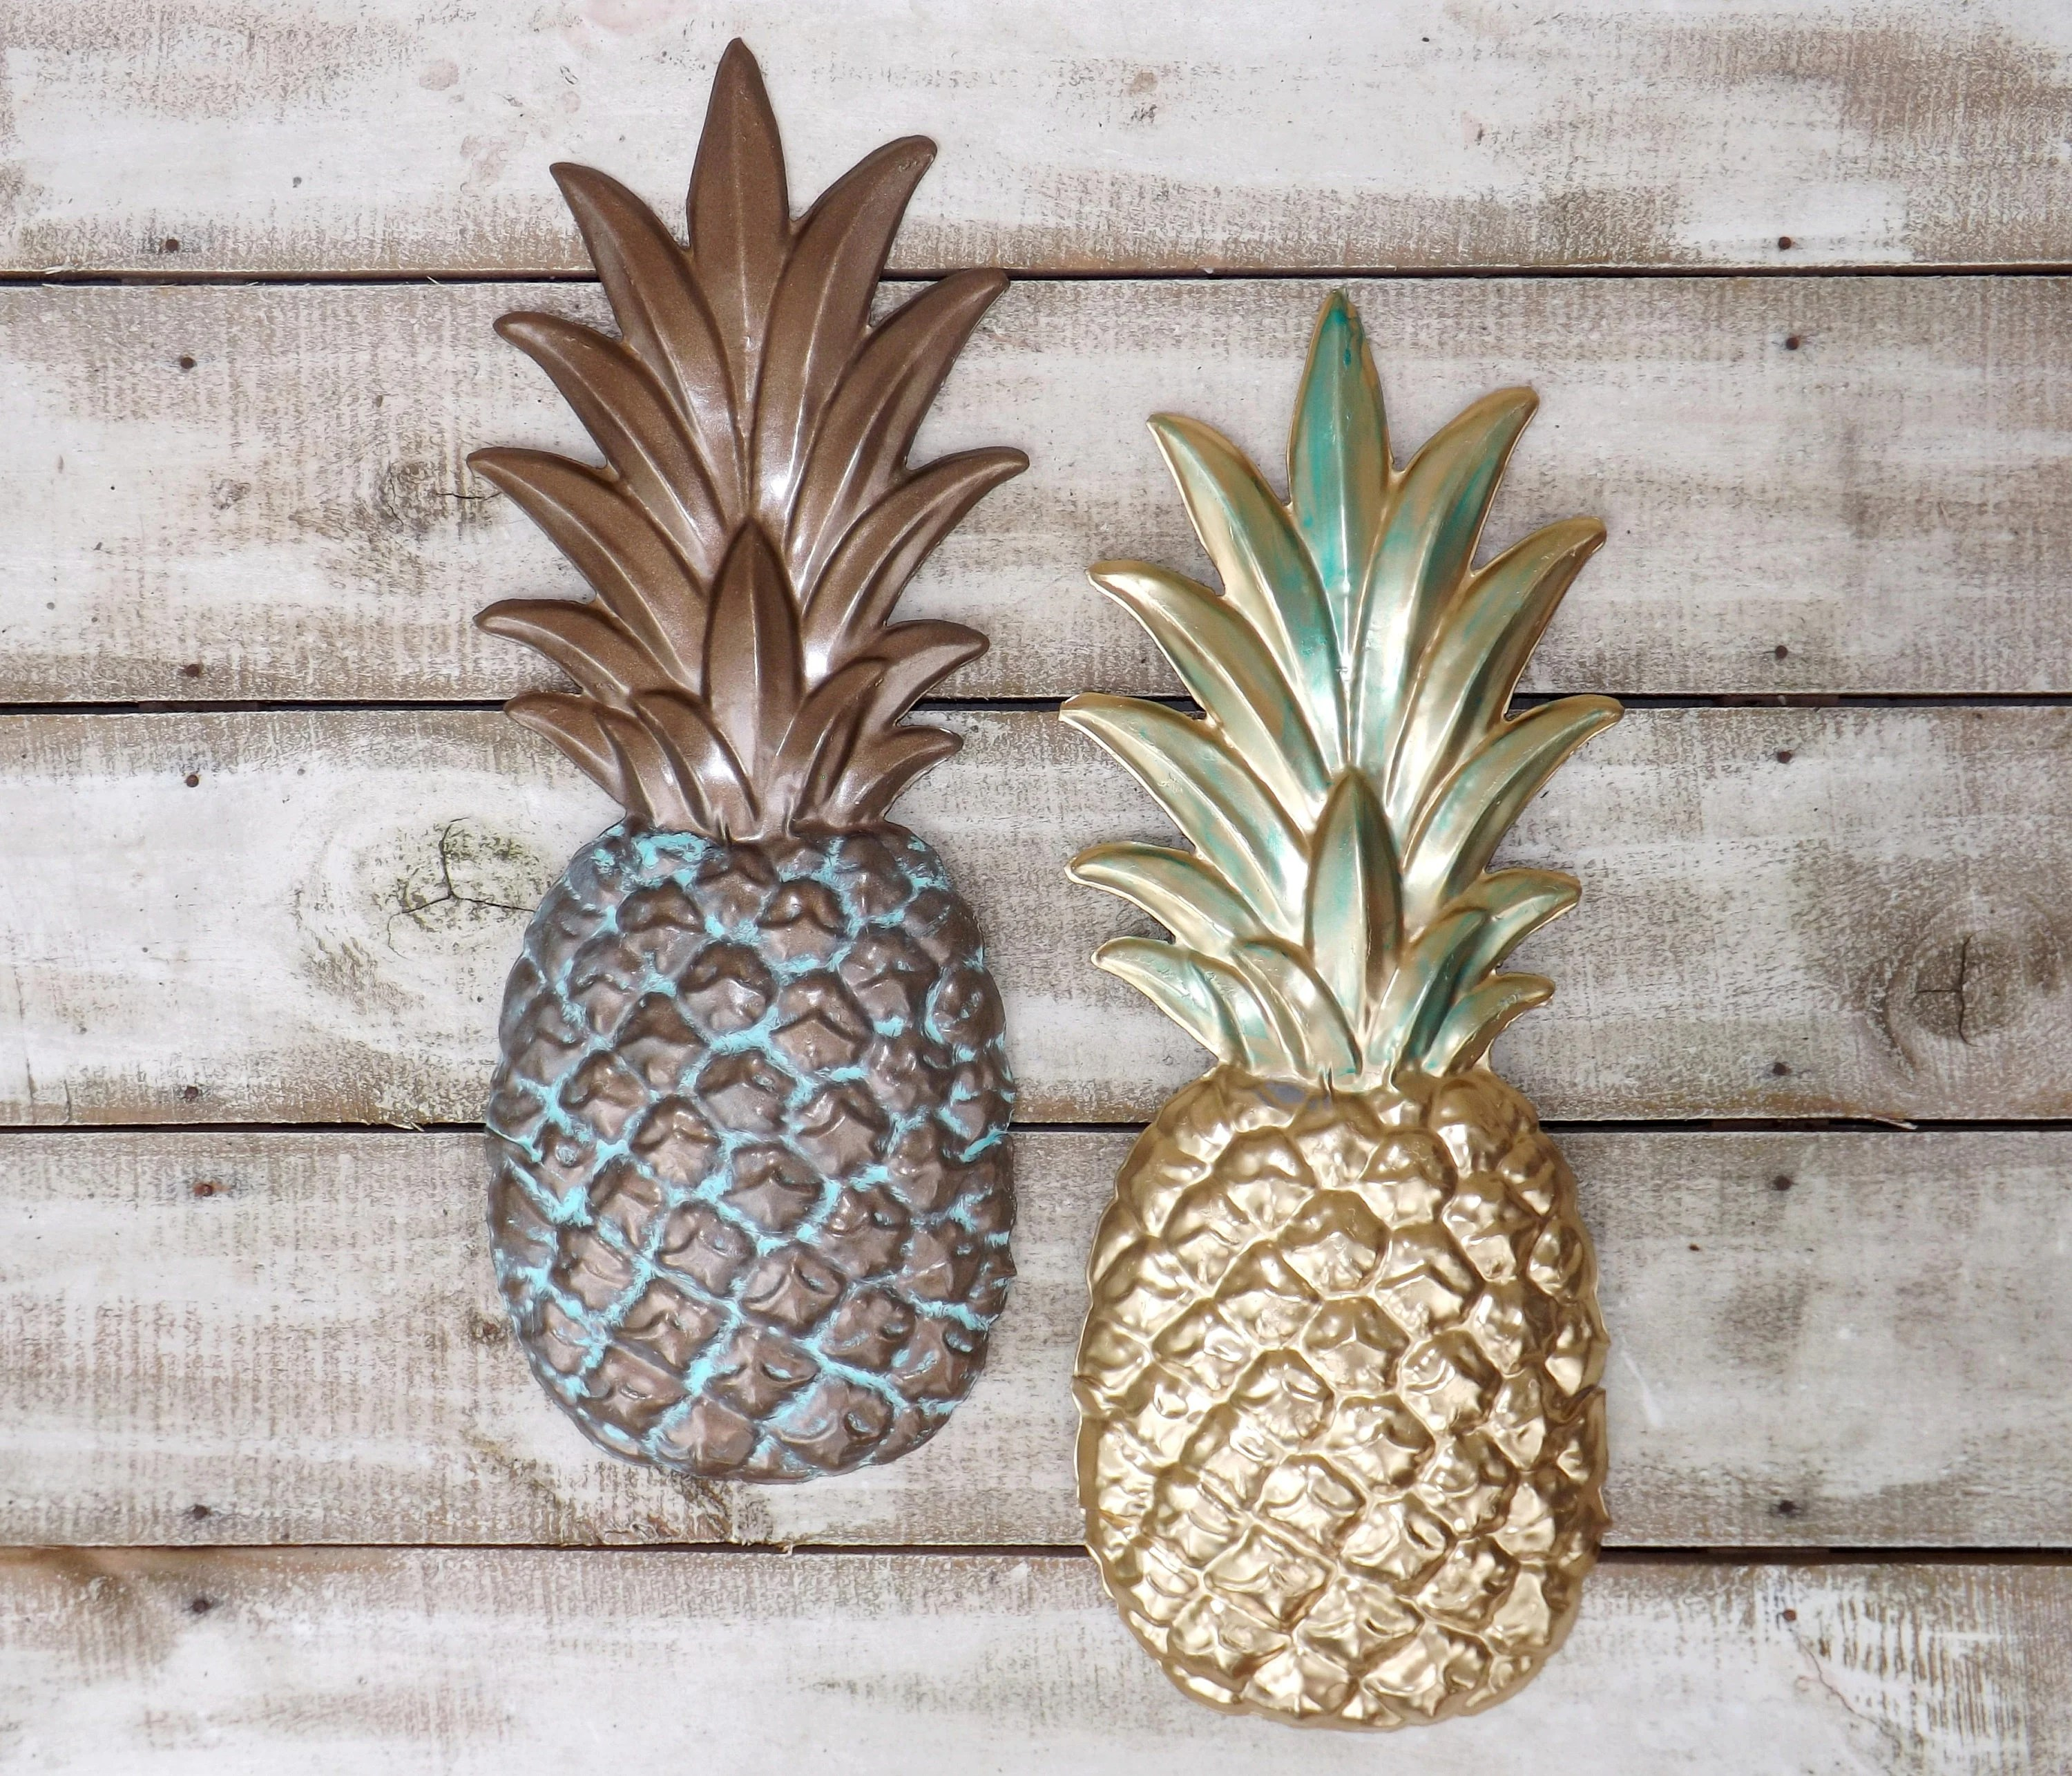 pineapple decorations for kitchen sinks lowes wall decor large metal